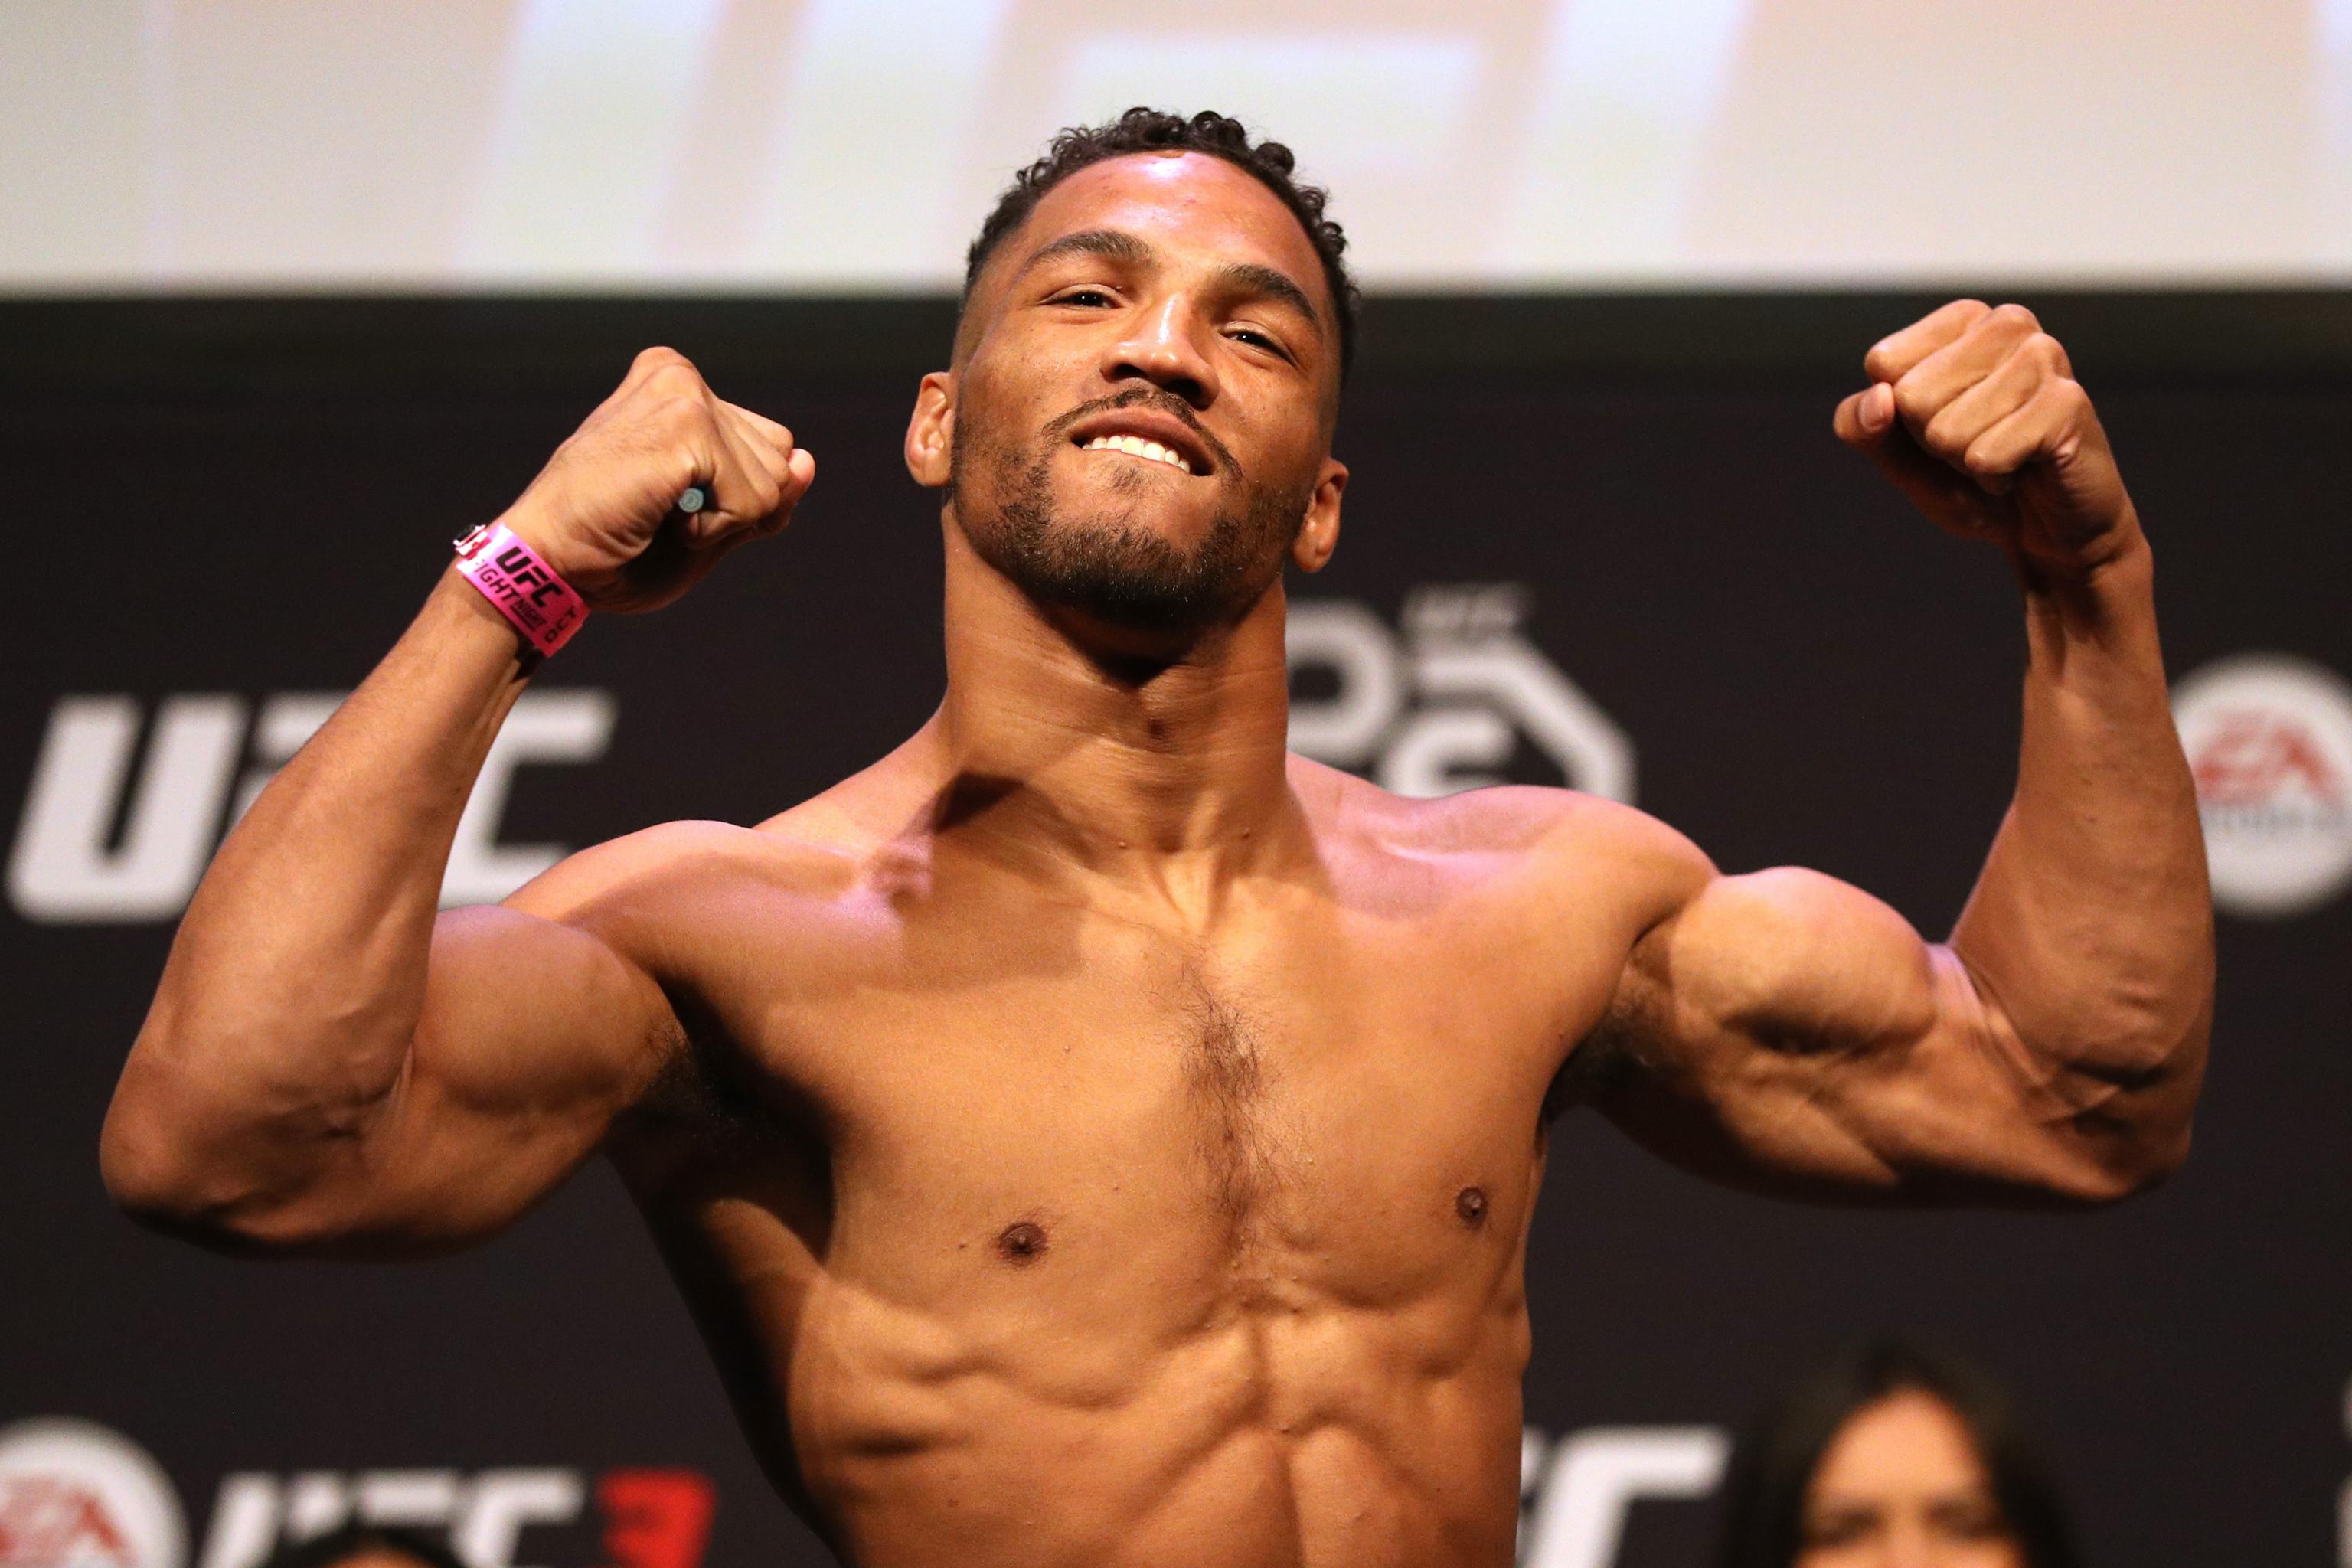 Ufc Fight Night 128 Results Kevin Lee Tko S Edson Barboza In Main Event Bleacher Report Latest News Videos And Highlights